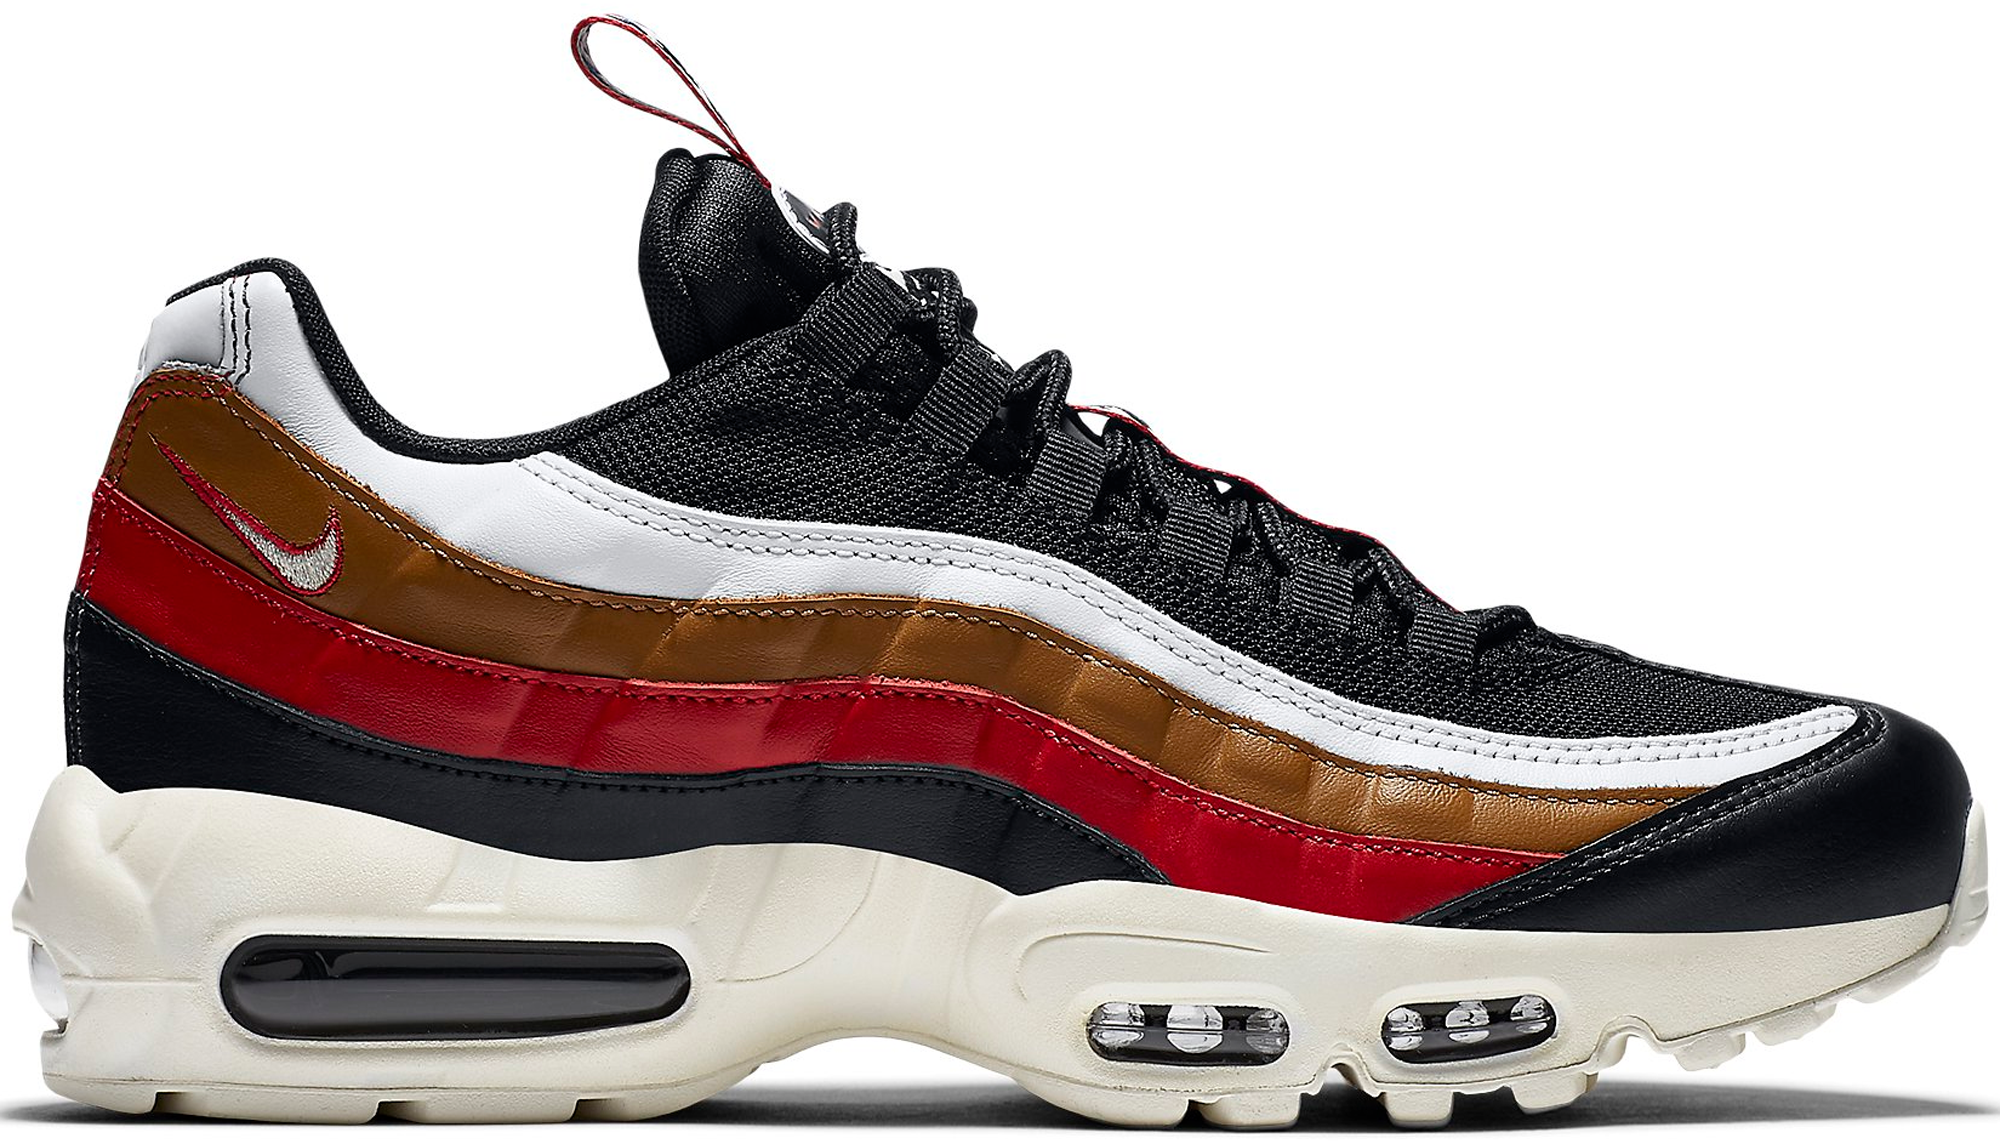 ... wholesale nike air max 95 pull tab black brown 67c02 330d5 b0f664477